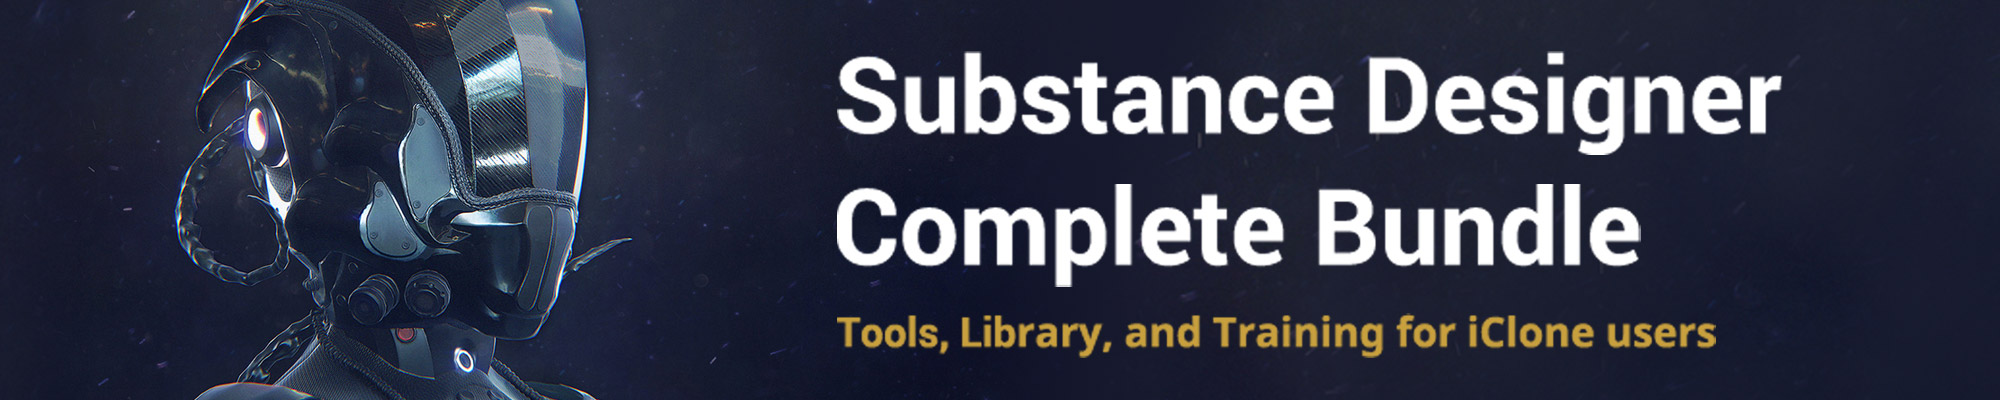 Substance Designer Complete Bundle